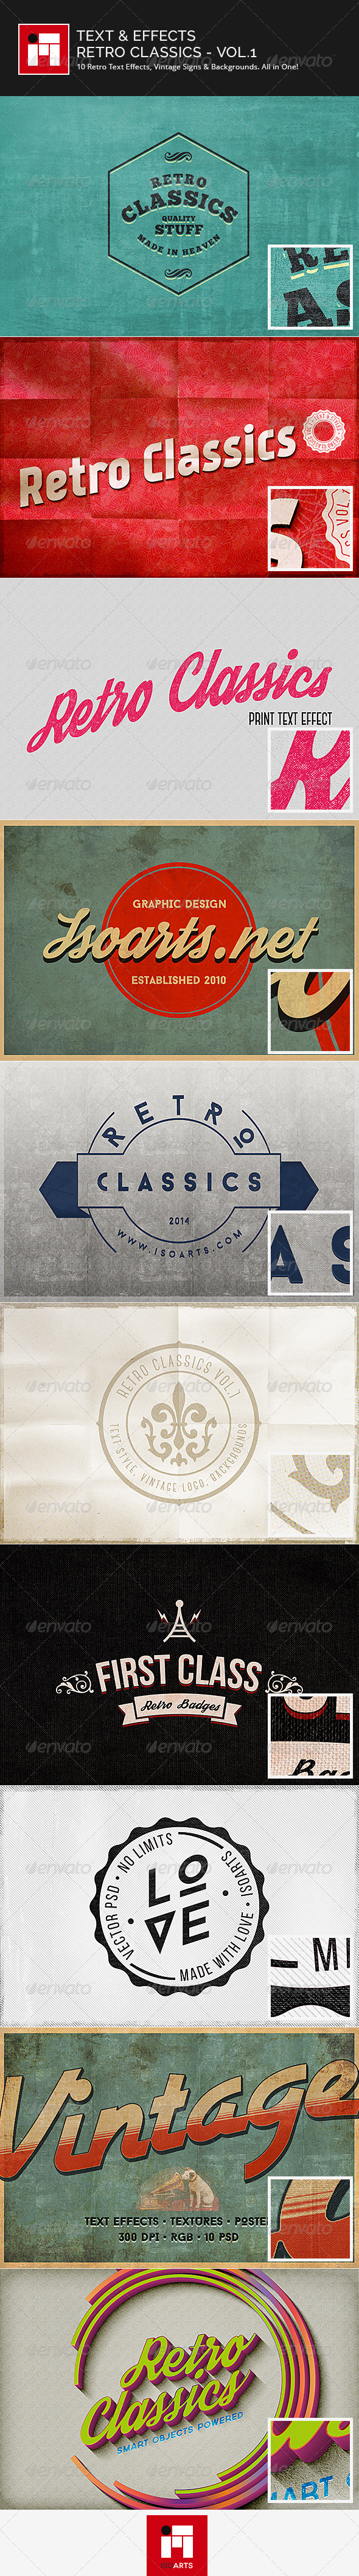 GraphicRiver Text & Effects Vintage Retro Classics Vol.1 7849029